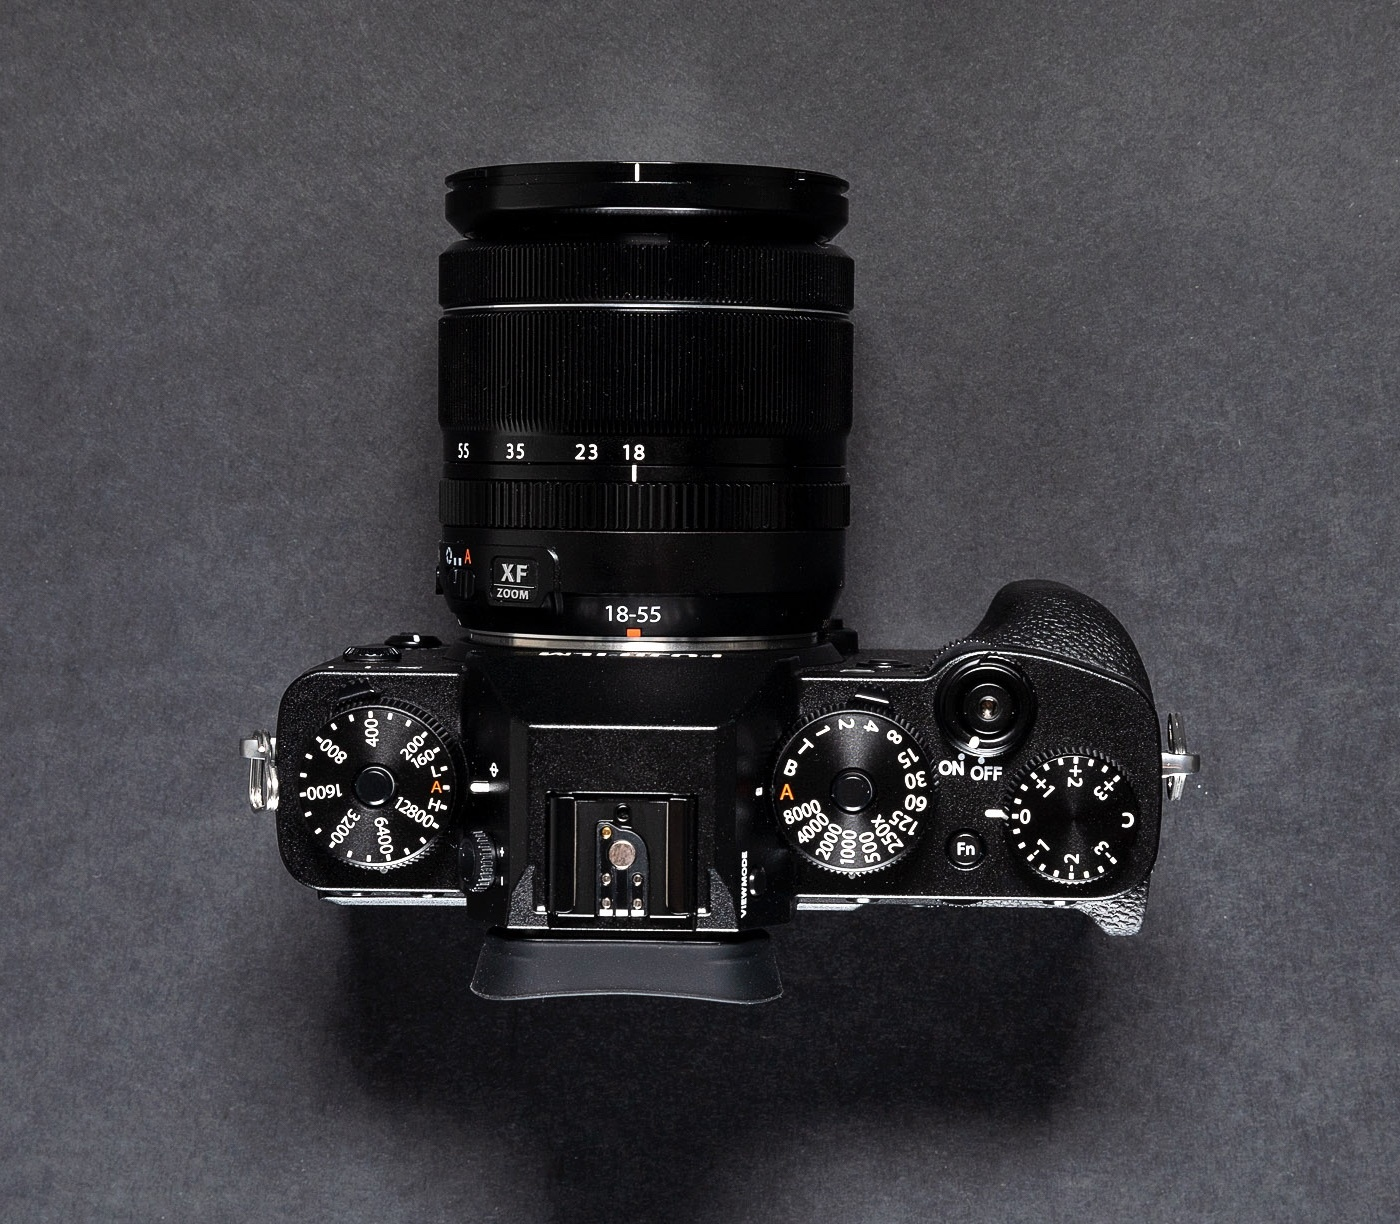 Fuji X Wedding Photography: Fujifilm X-T3 Review: The Do-everything Camera